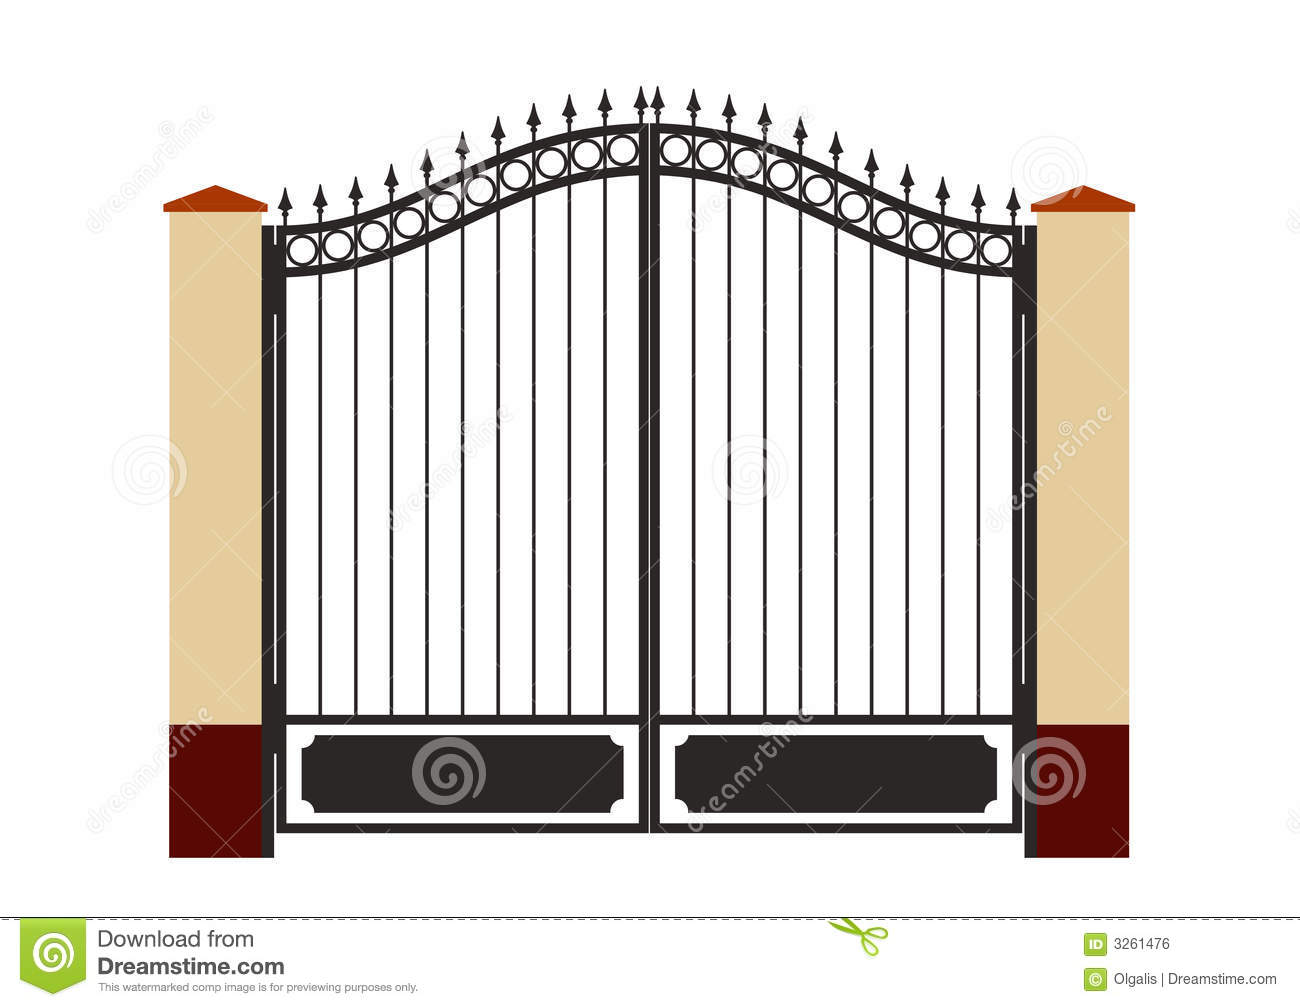 Gate clipart #16, Download drawings